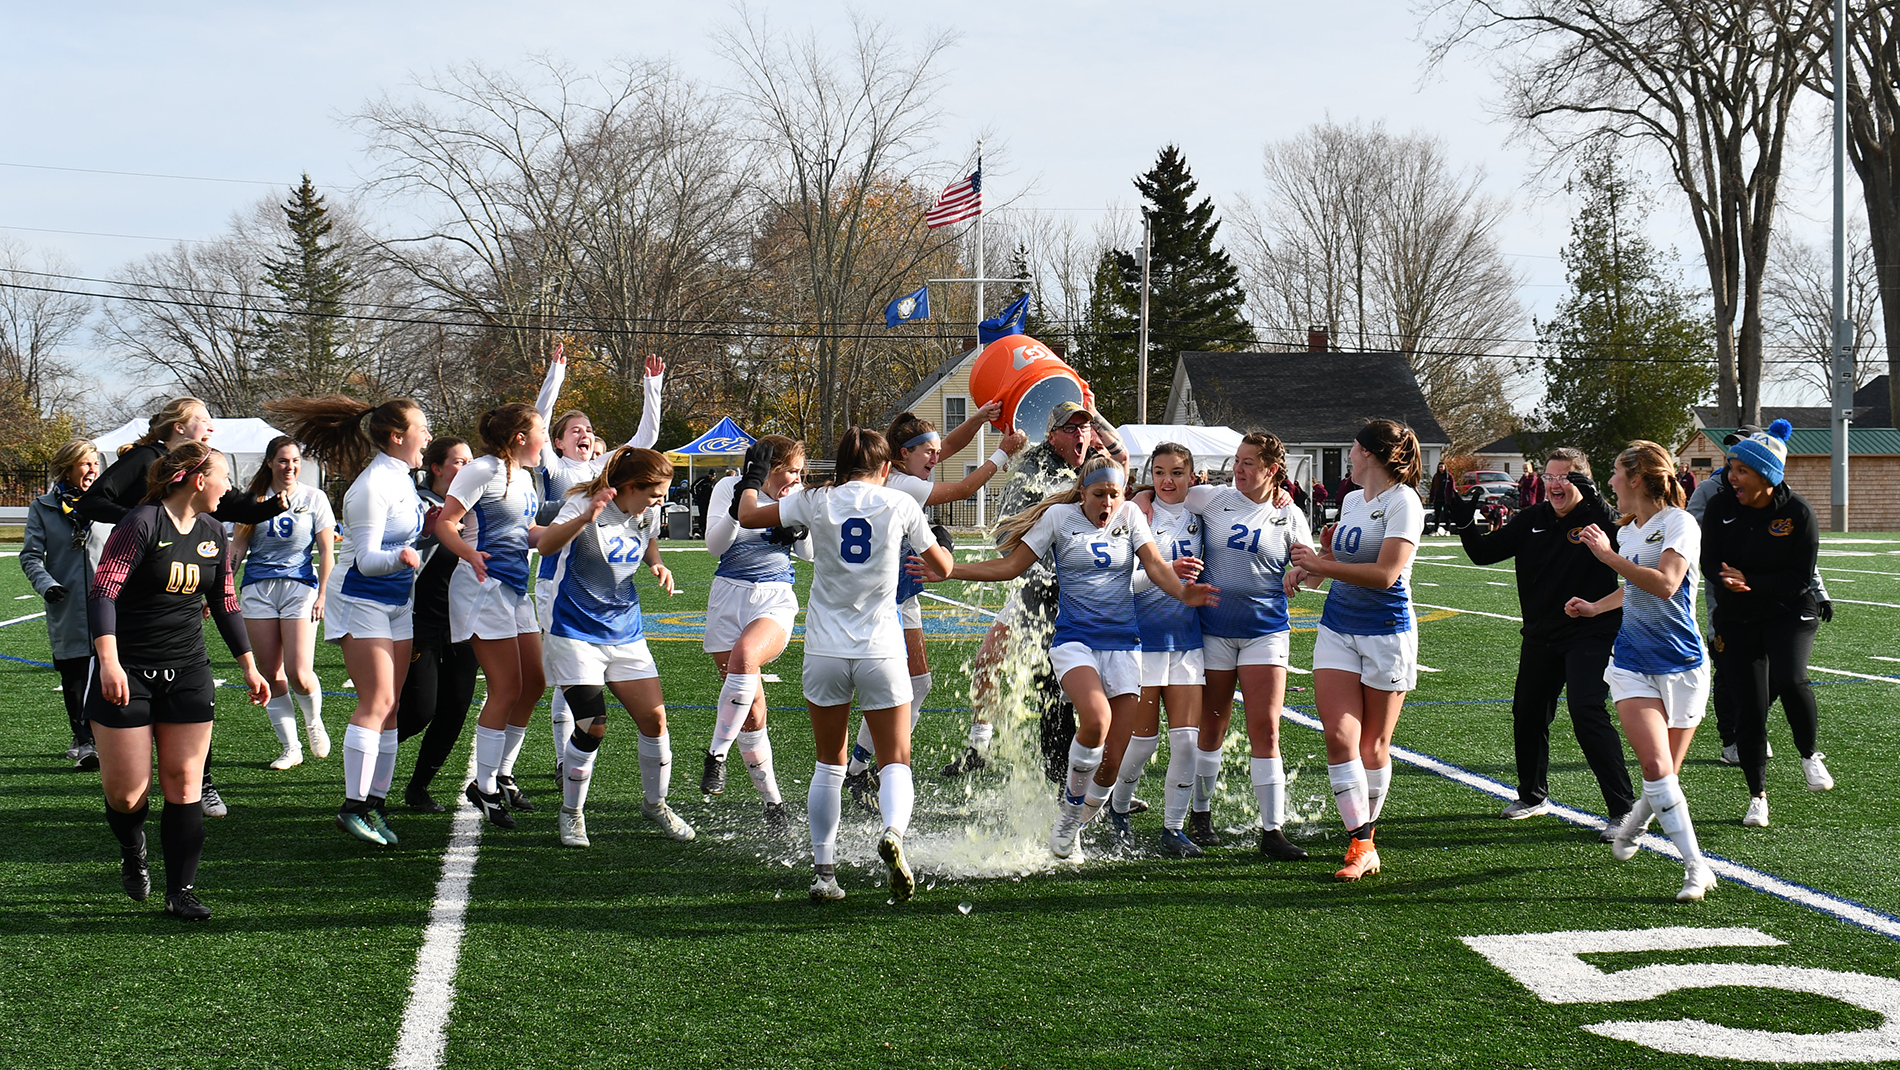 Women's Soccer Will Take on Amherst in NCAA First Round